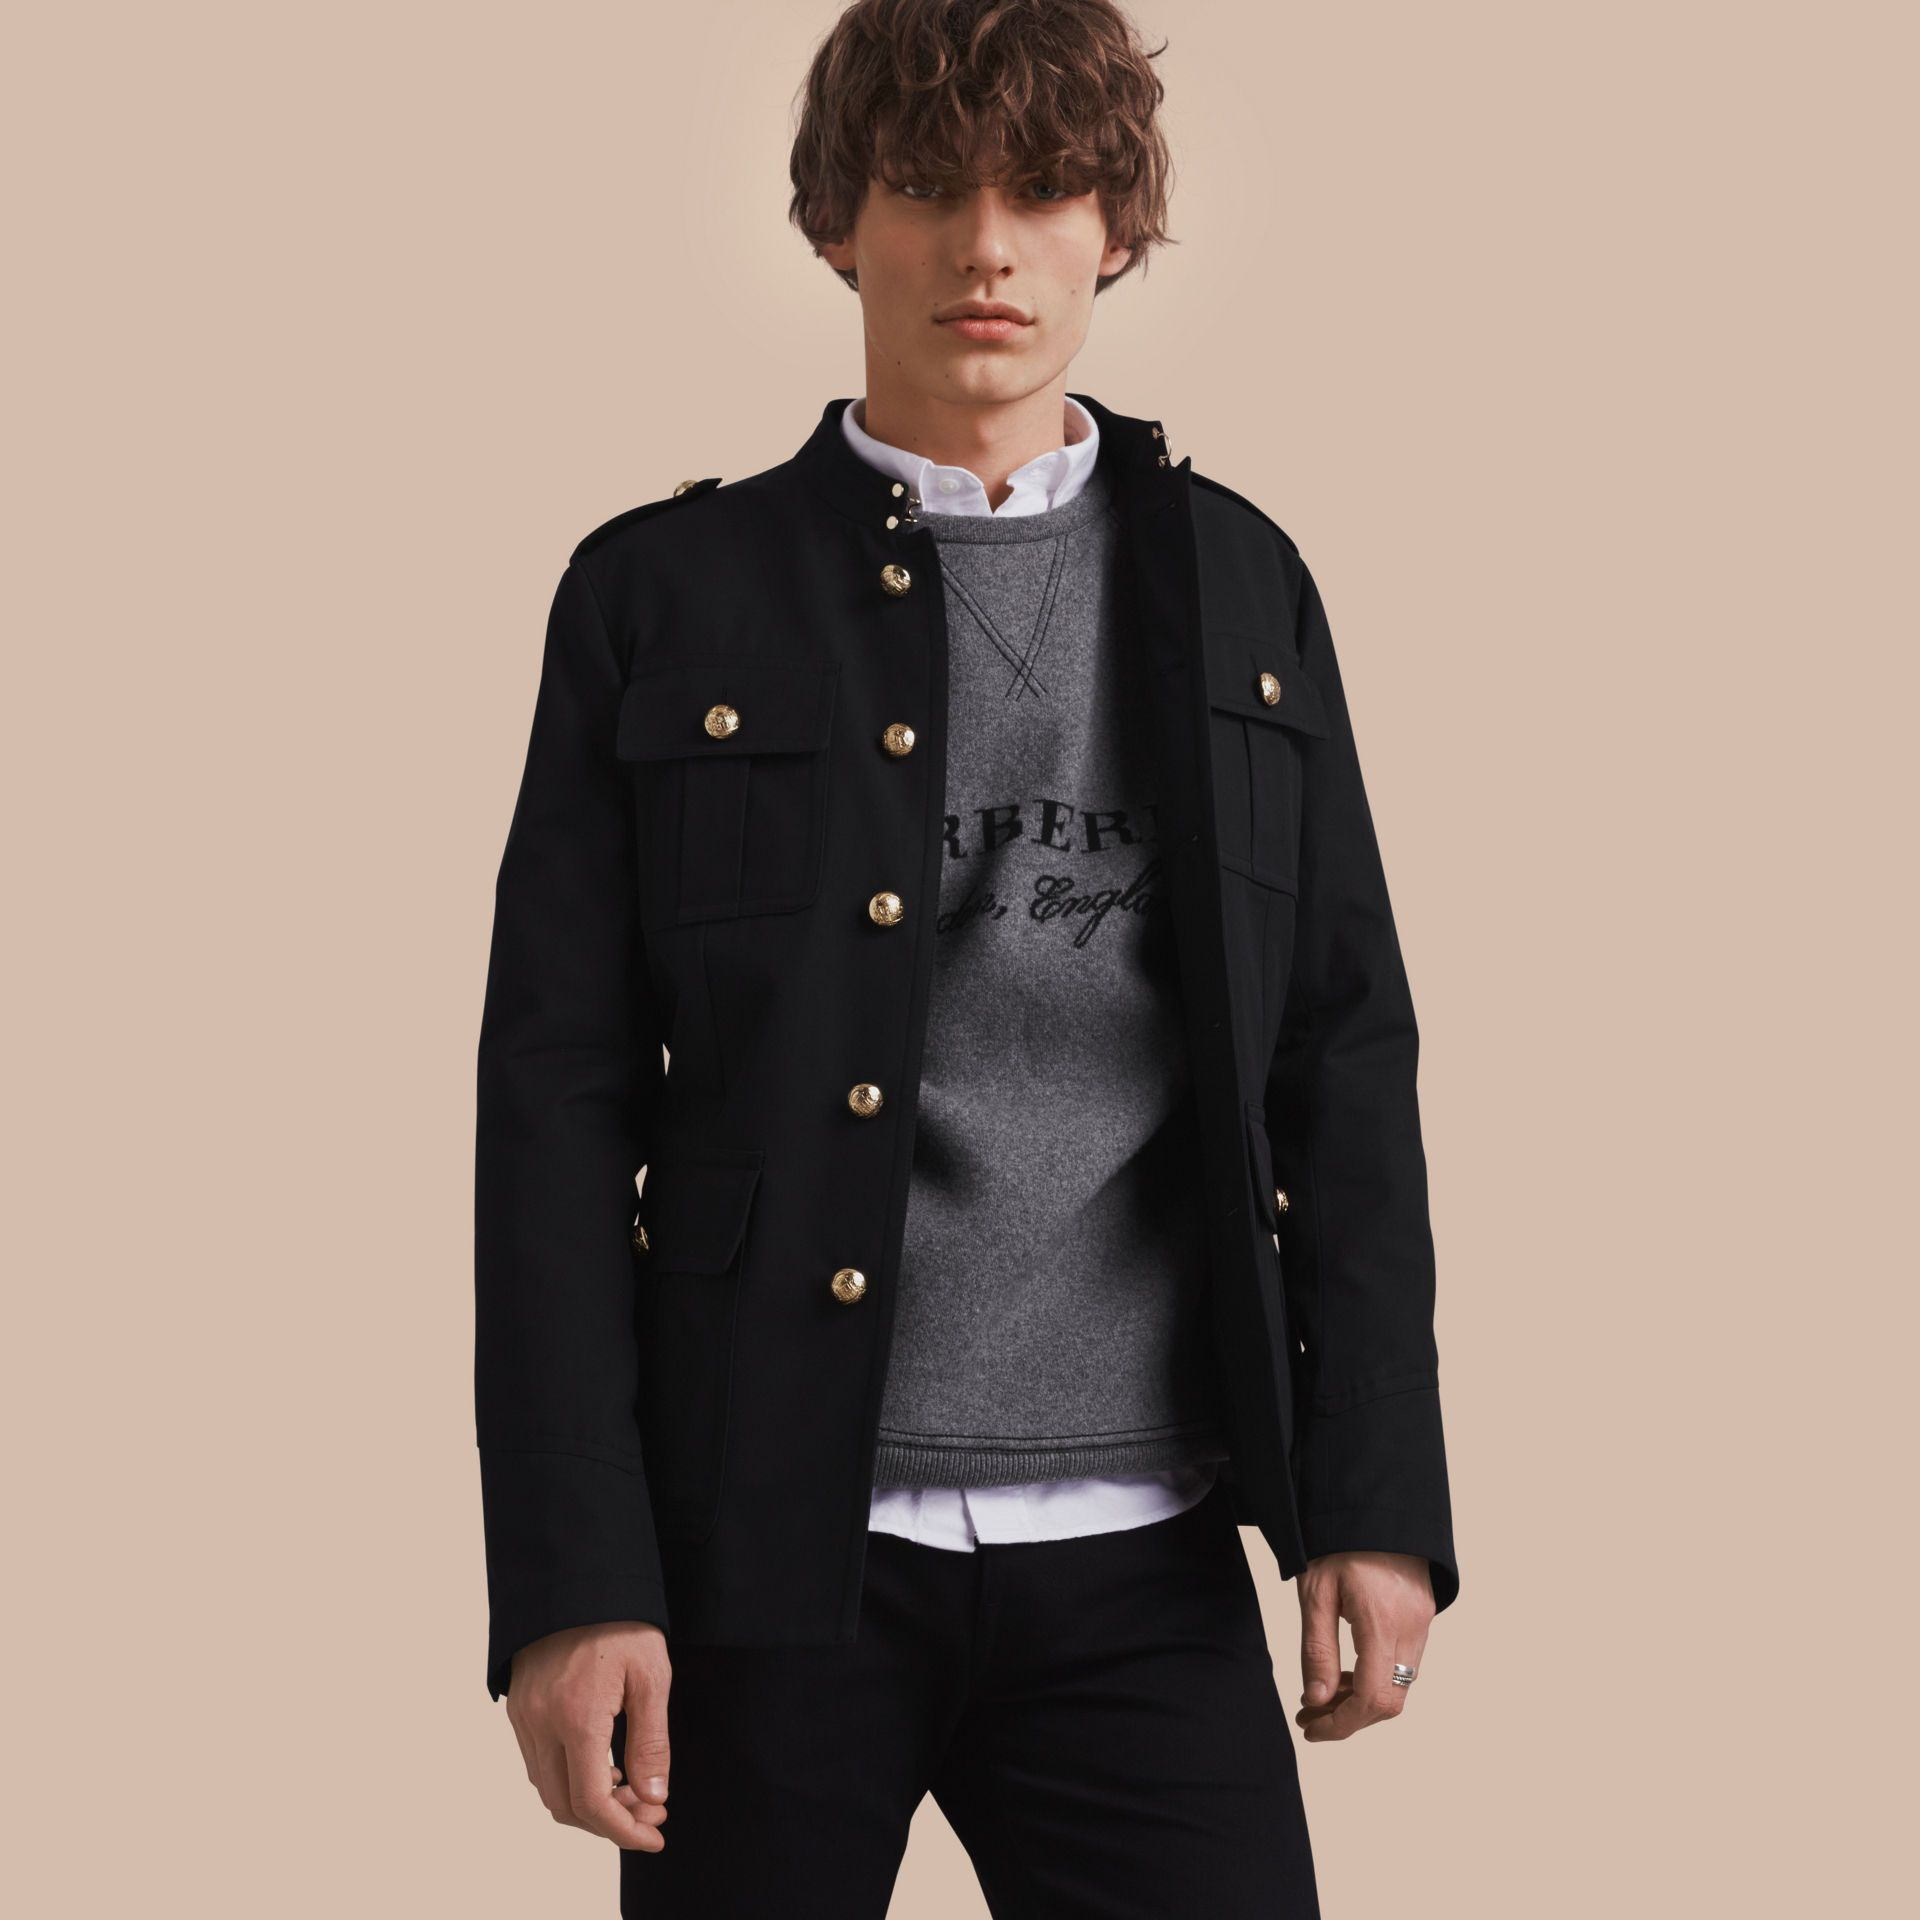 Military Cotton Jacket Burberry Cotton Jacket Jackets Burberry Trench Coat